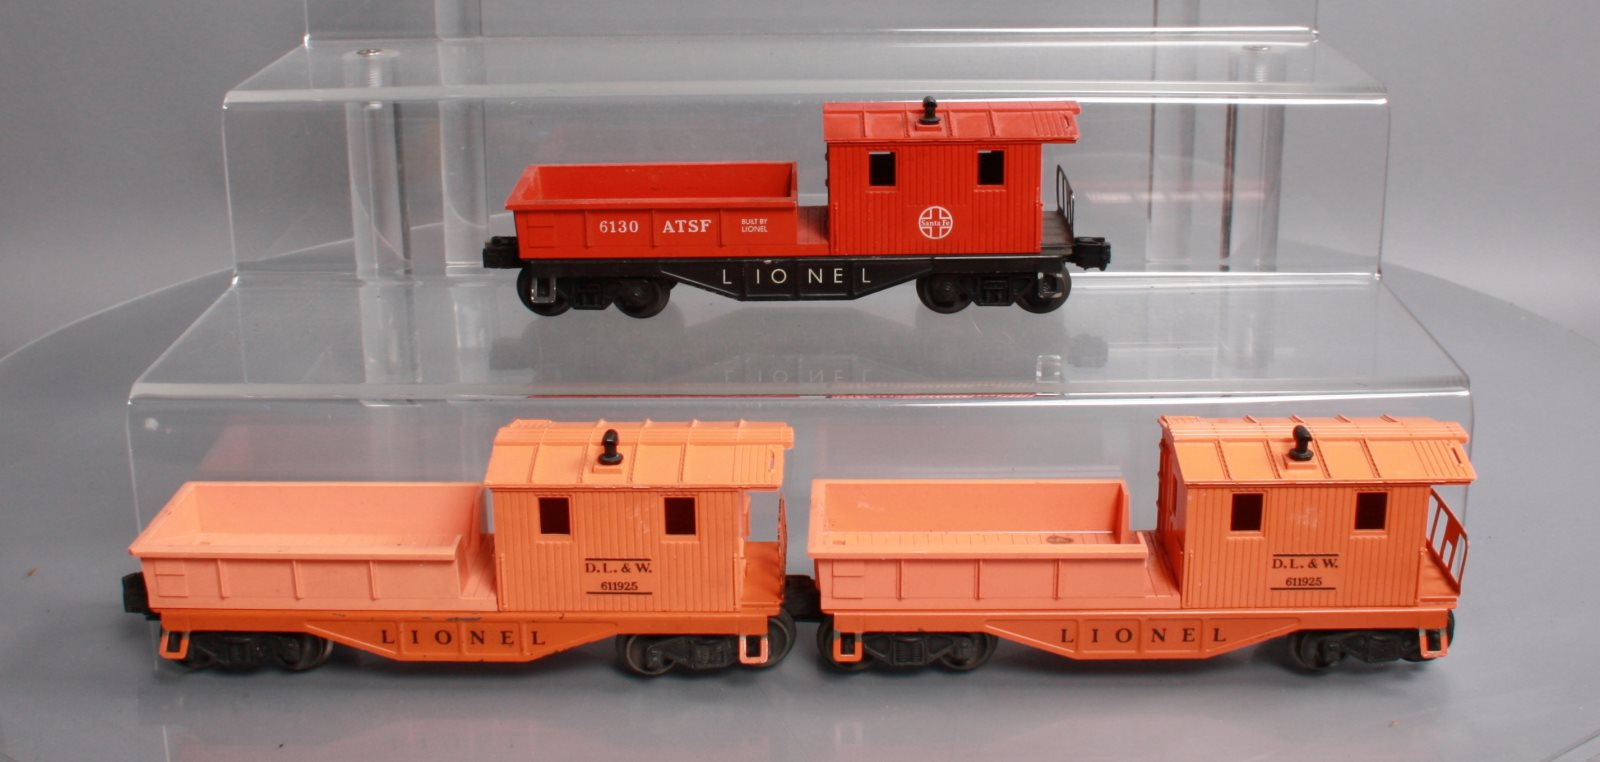 Lionel O Postwar Working Caboose Freight Cars: 611925 DL&W and 6130 ATSF [3]  Lionel